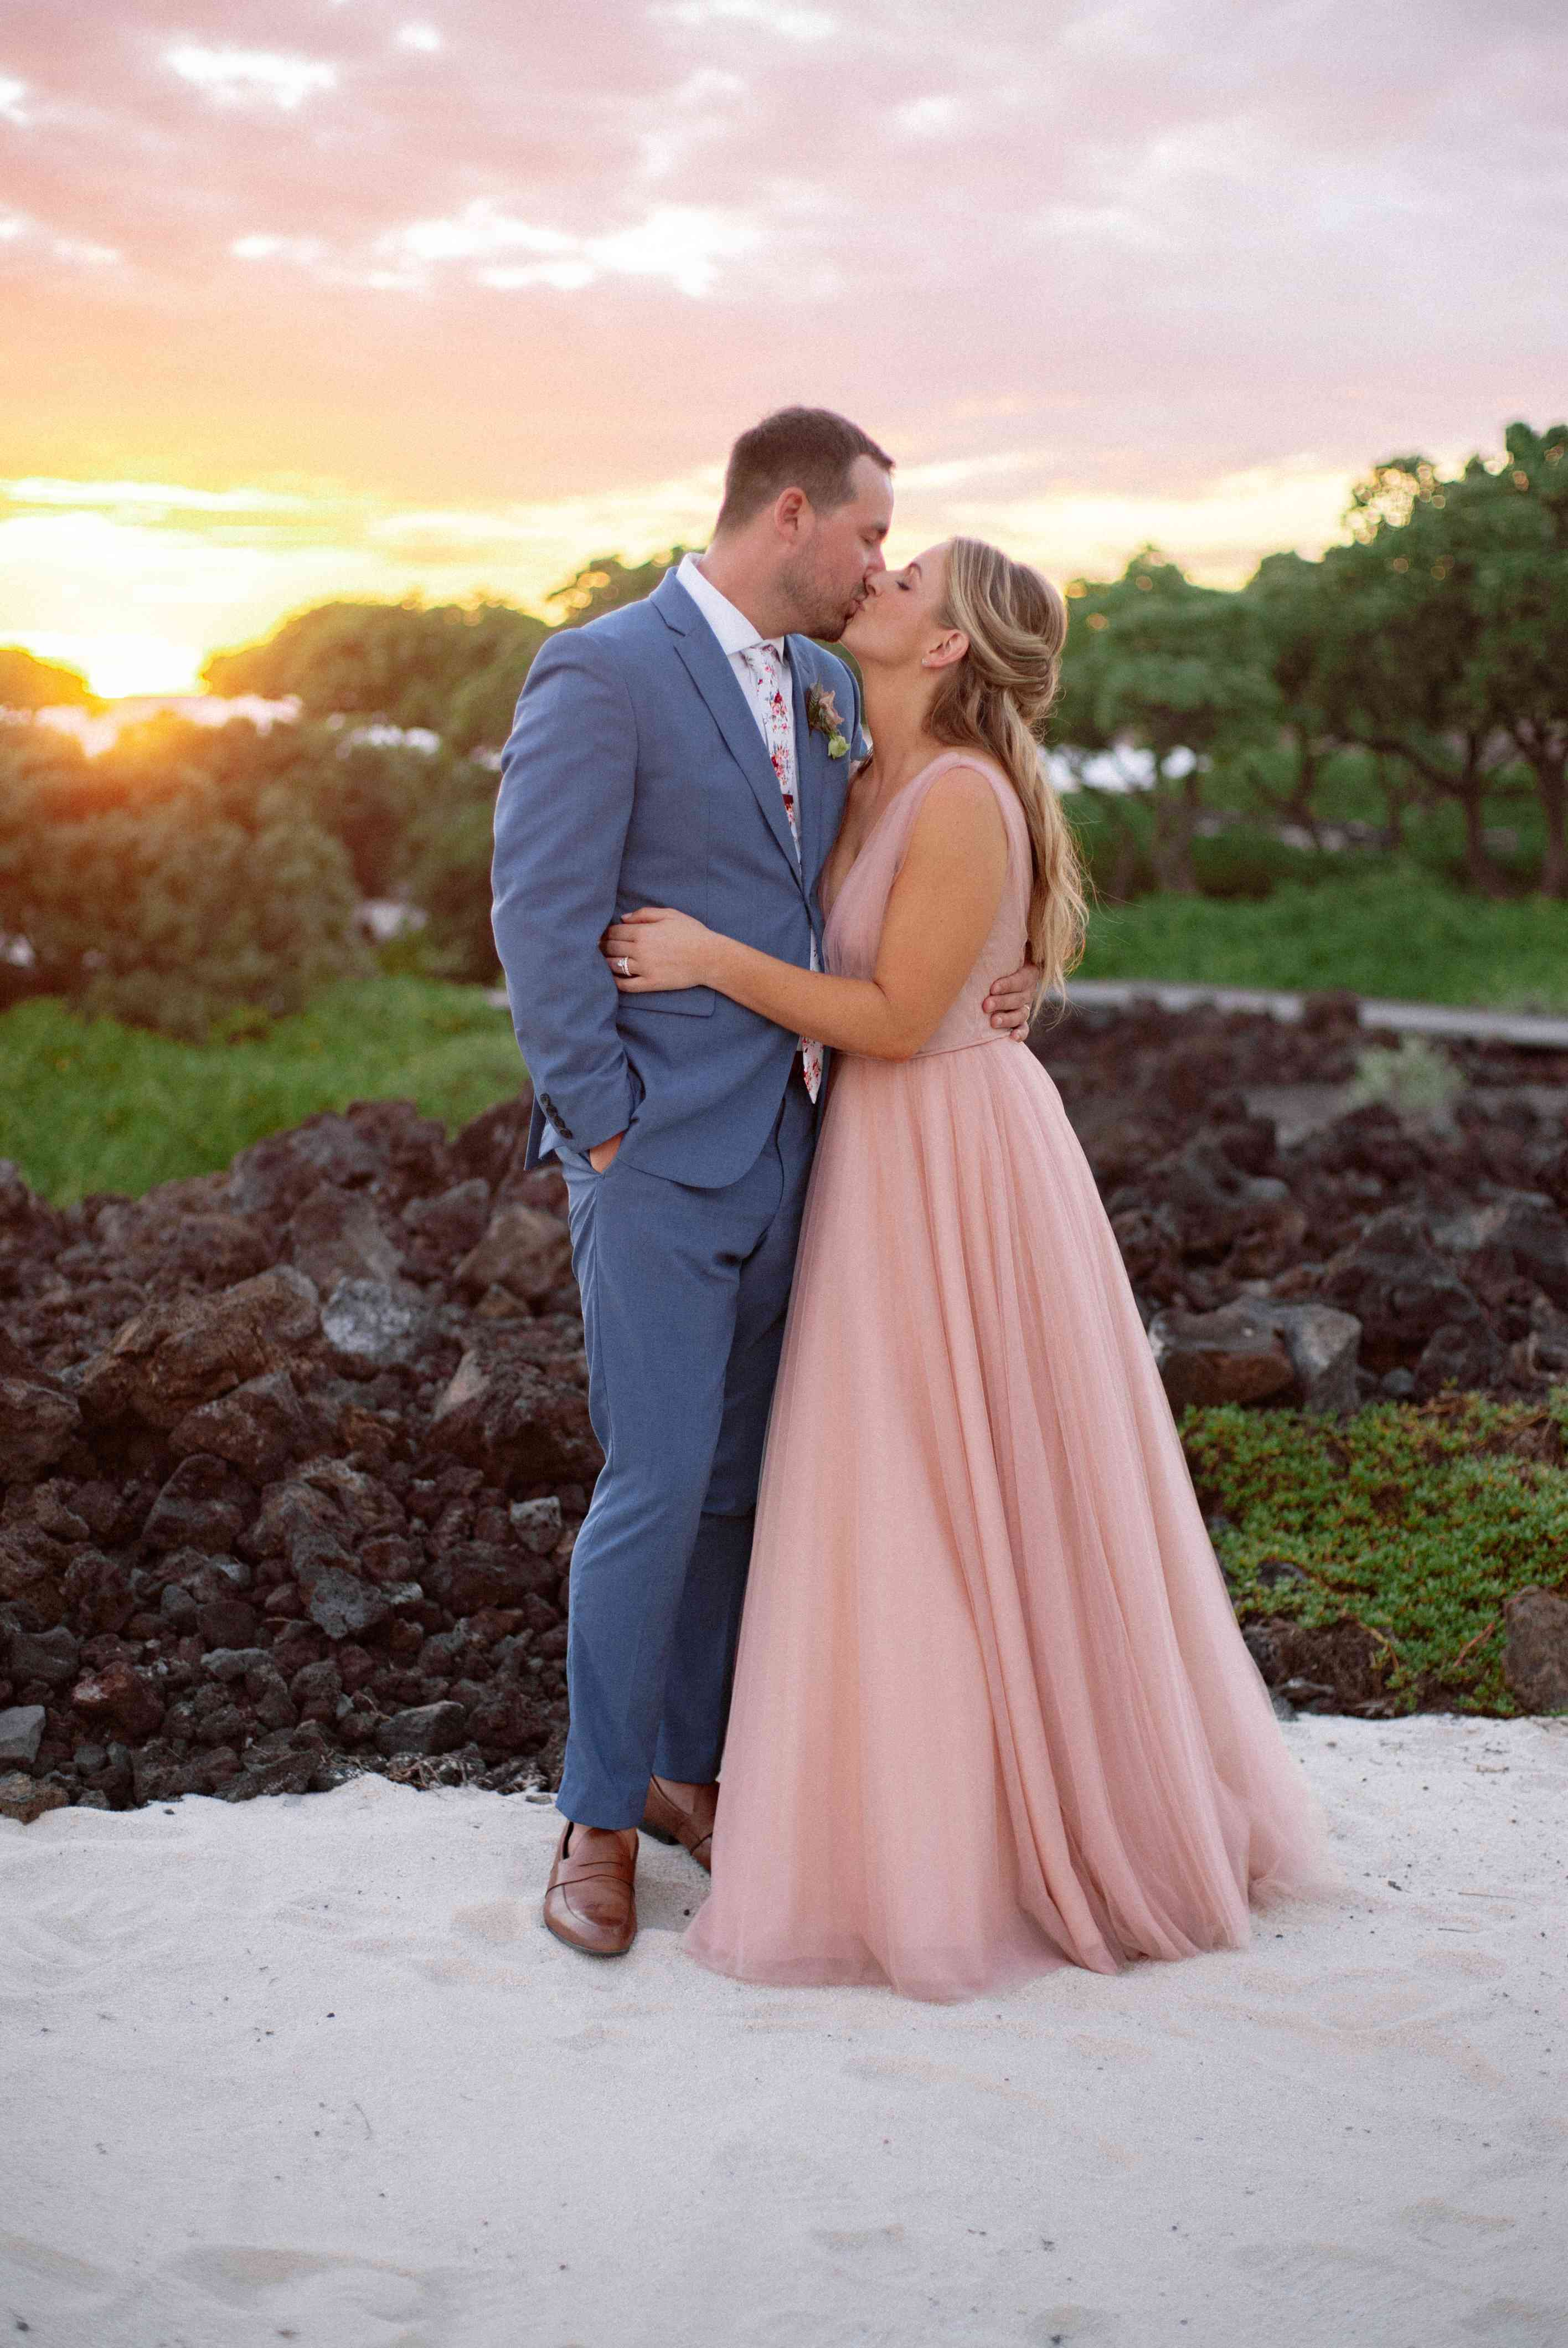 The couple kisses at sunset